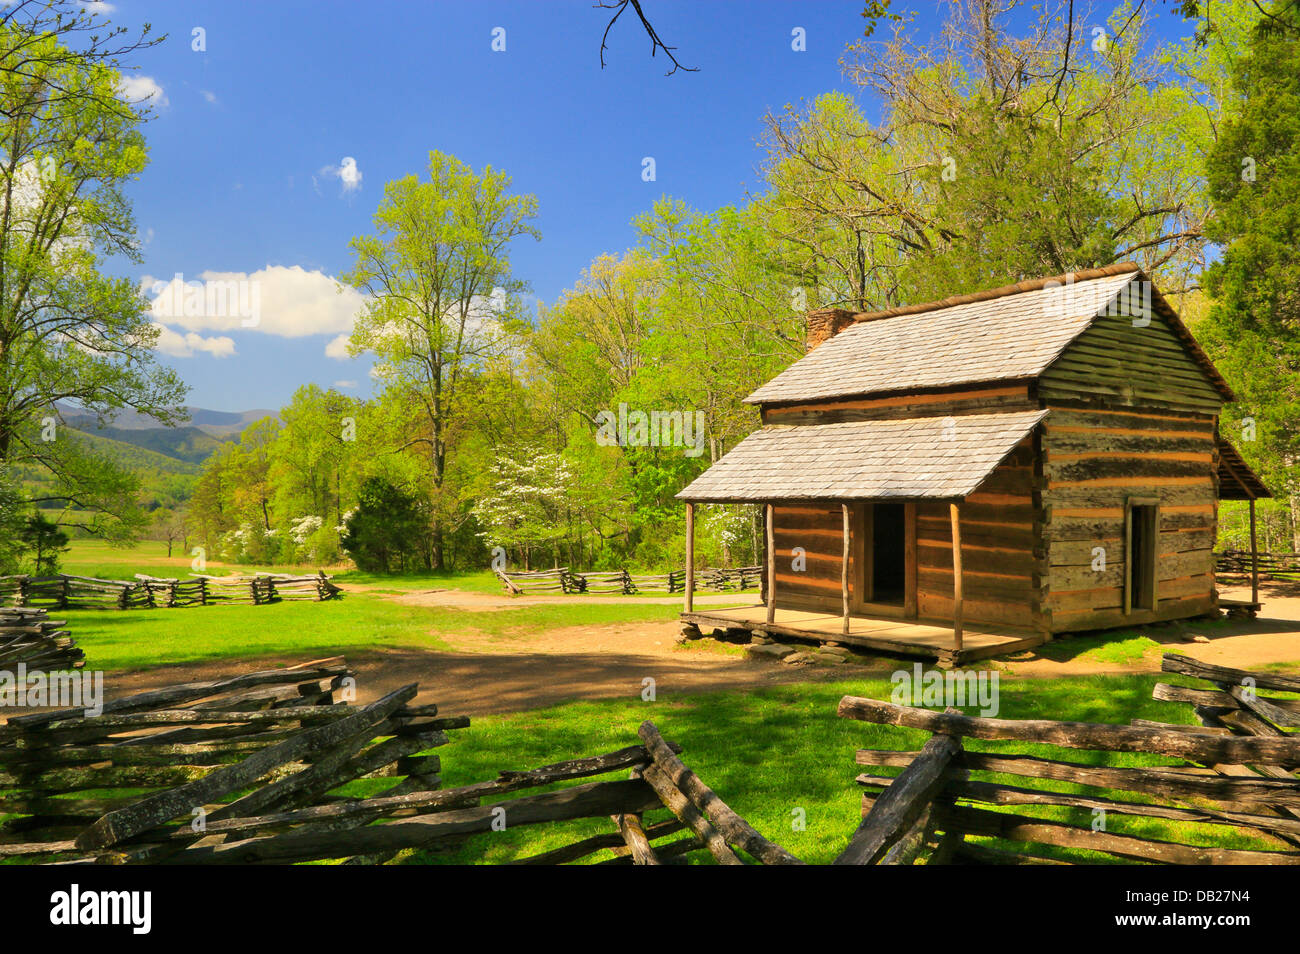 John Oliver Cabin Cades Cove Great Smoky Mountains National Park